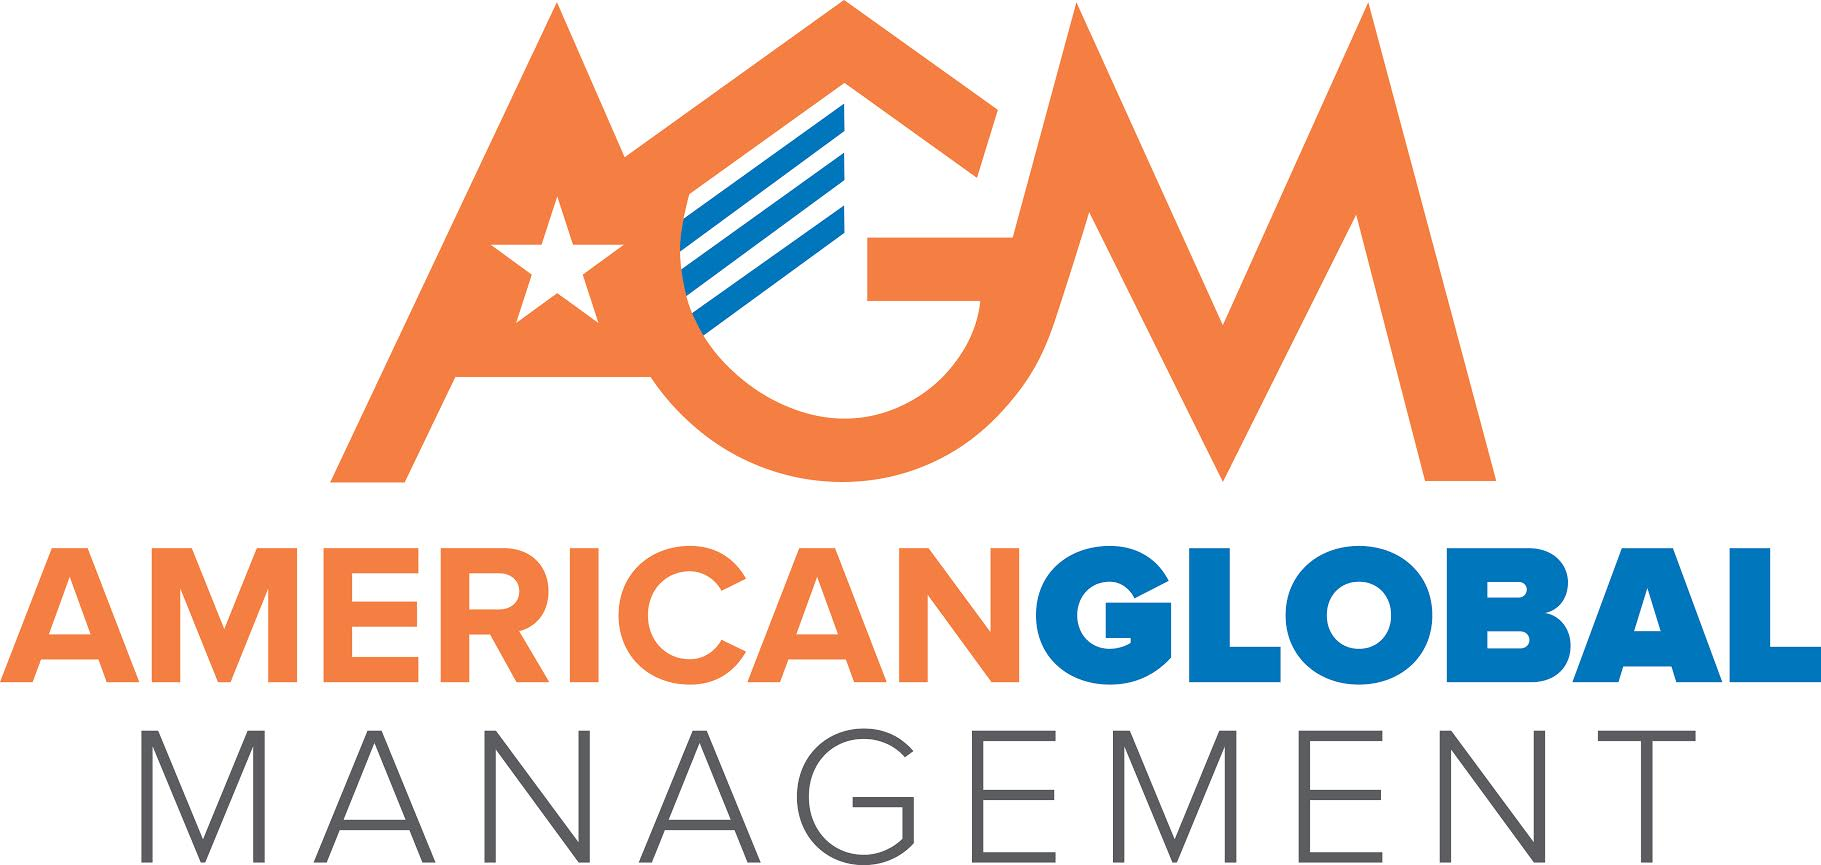 American Global Management